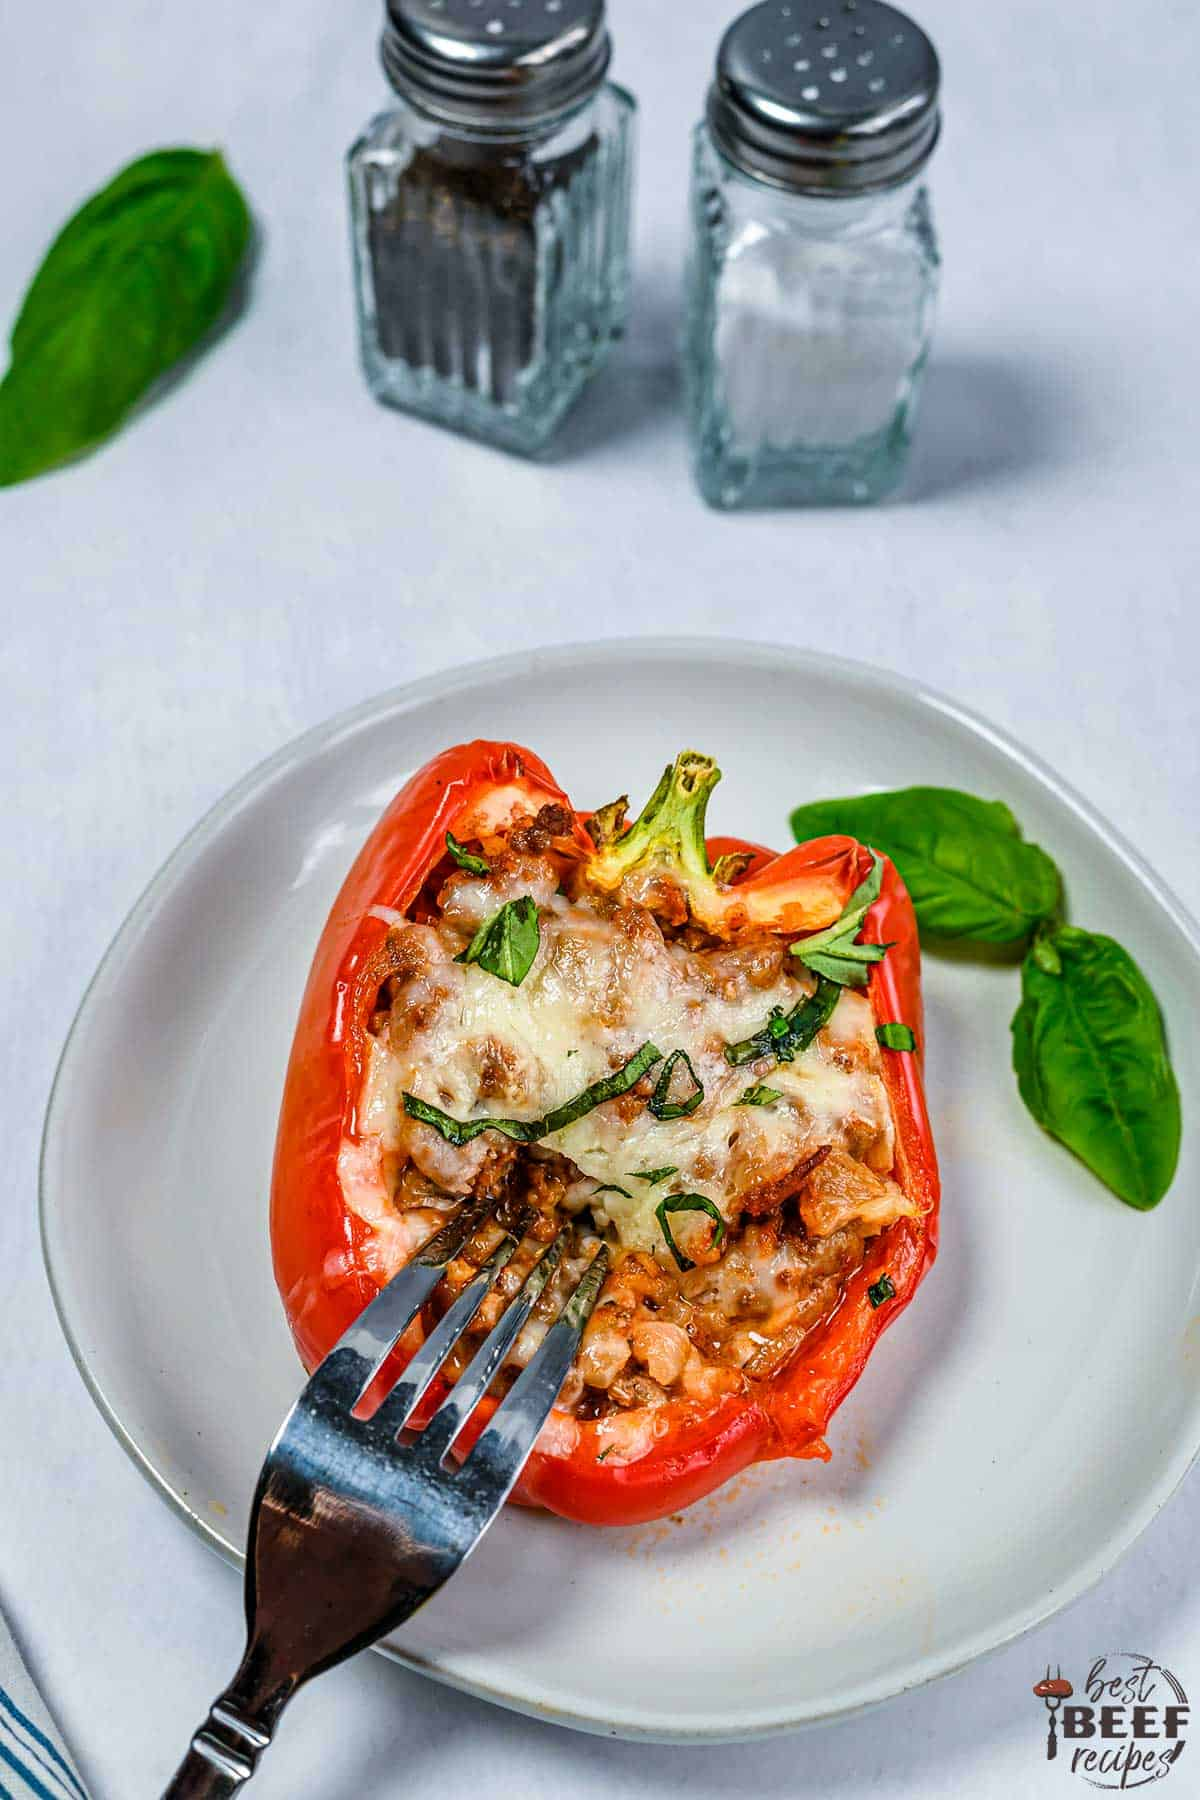 Stuffed bell pepper on a plate with a fork